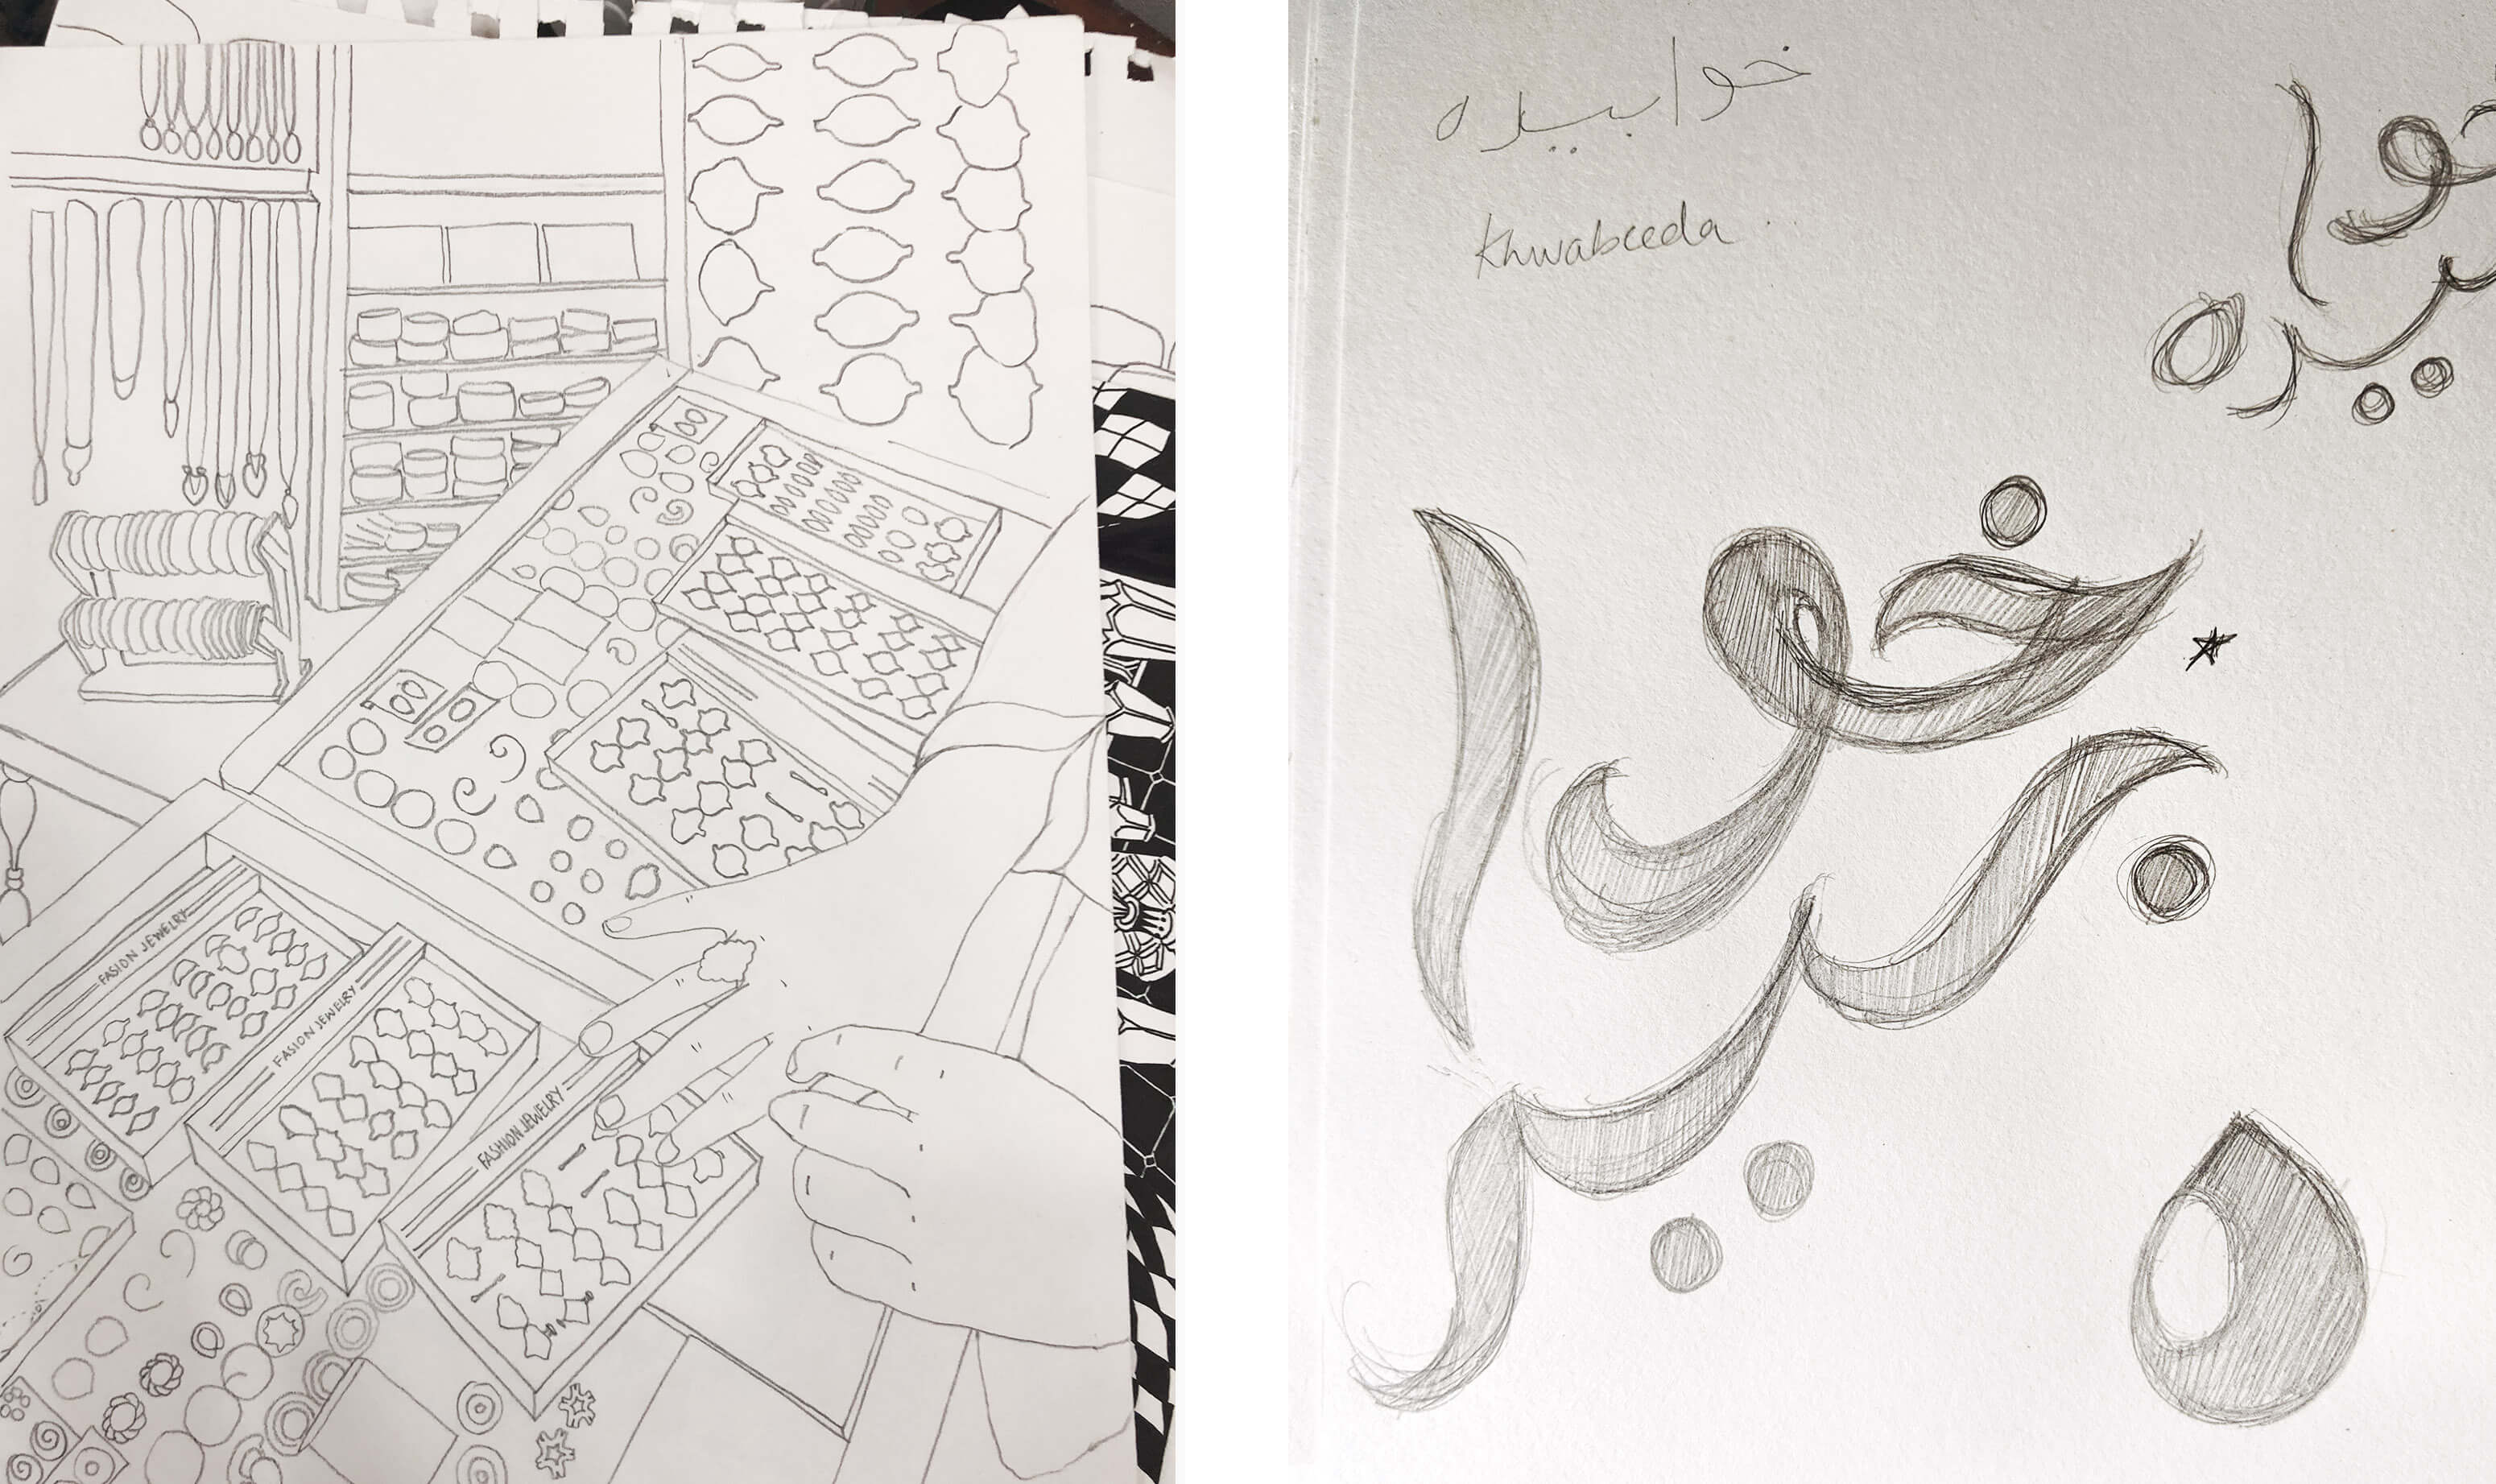 Hand drawn sketches in pencil on white paper showing a shop interior and urdu calligraphy